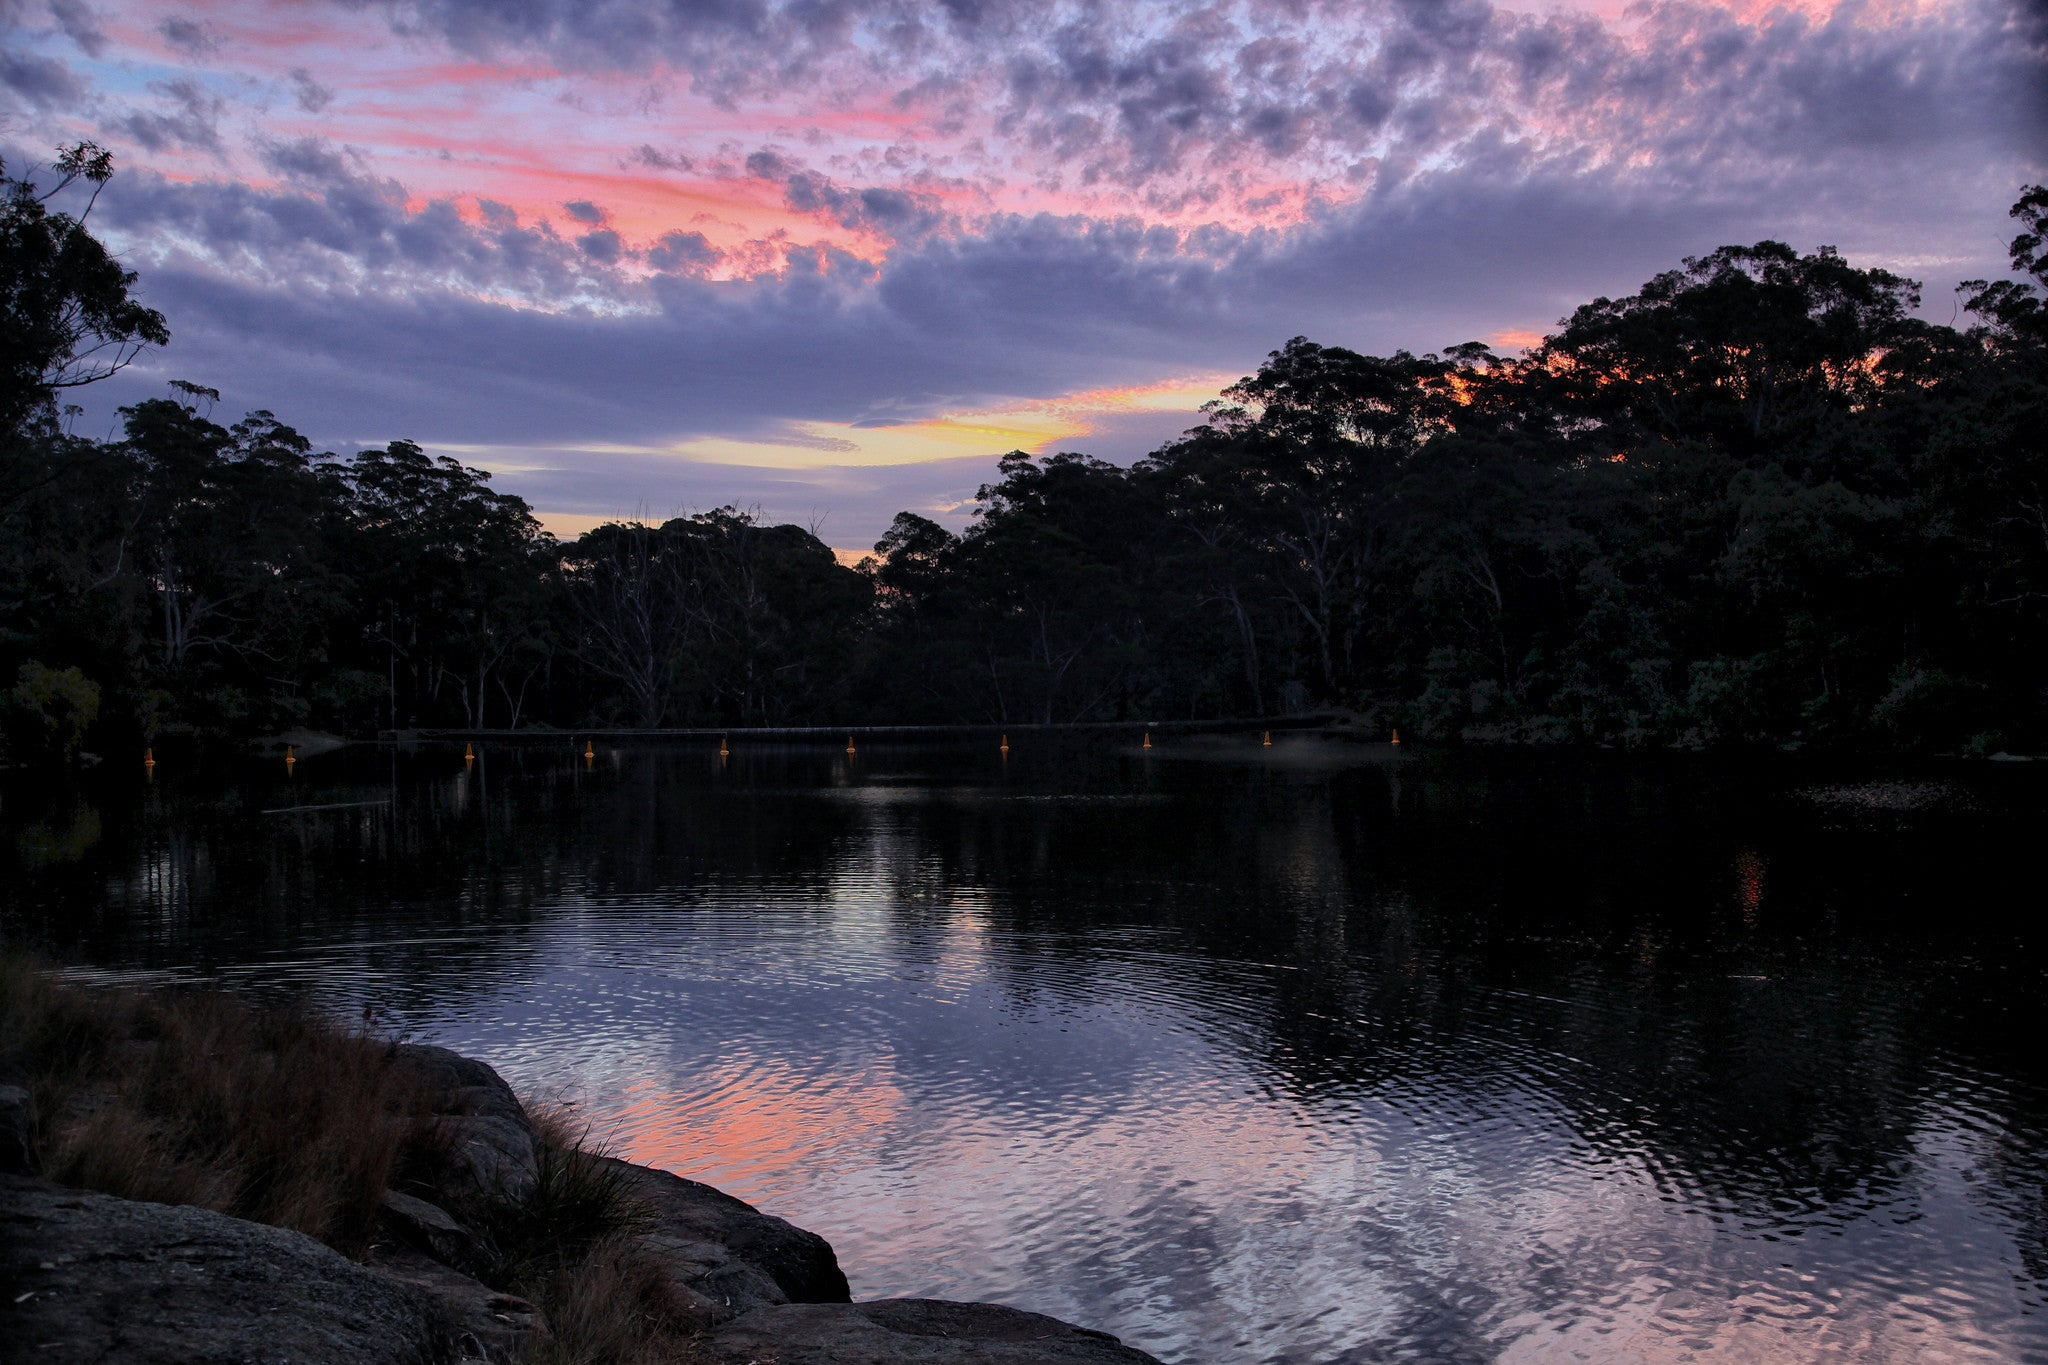 9 Location For Wedding Photos In Sydney - Lake Parramatta